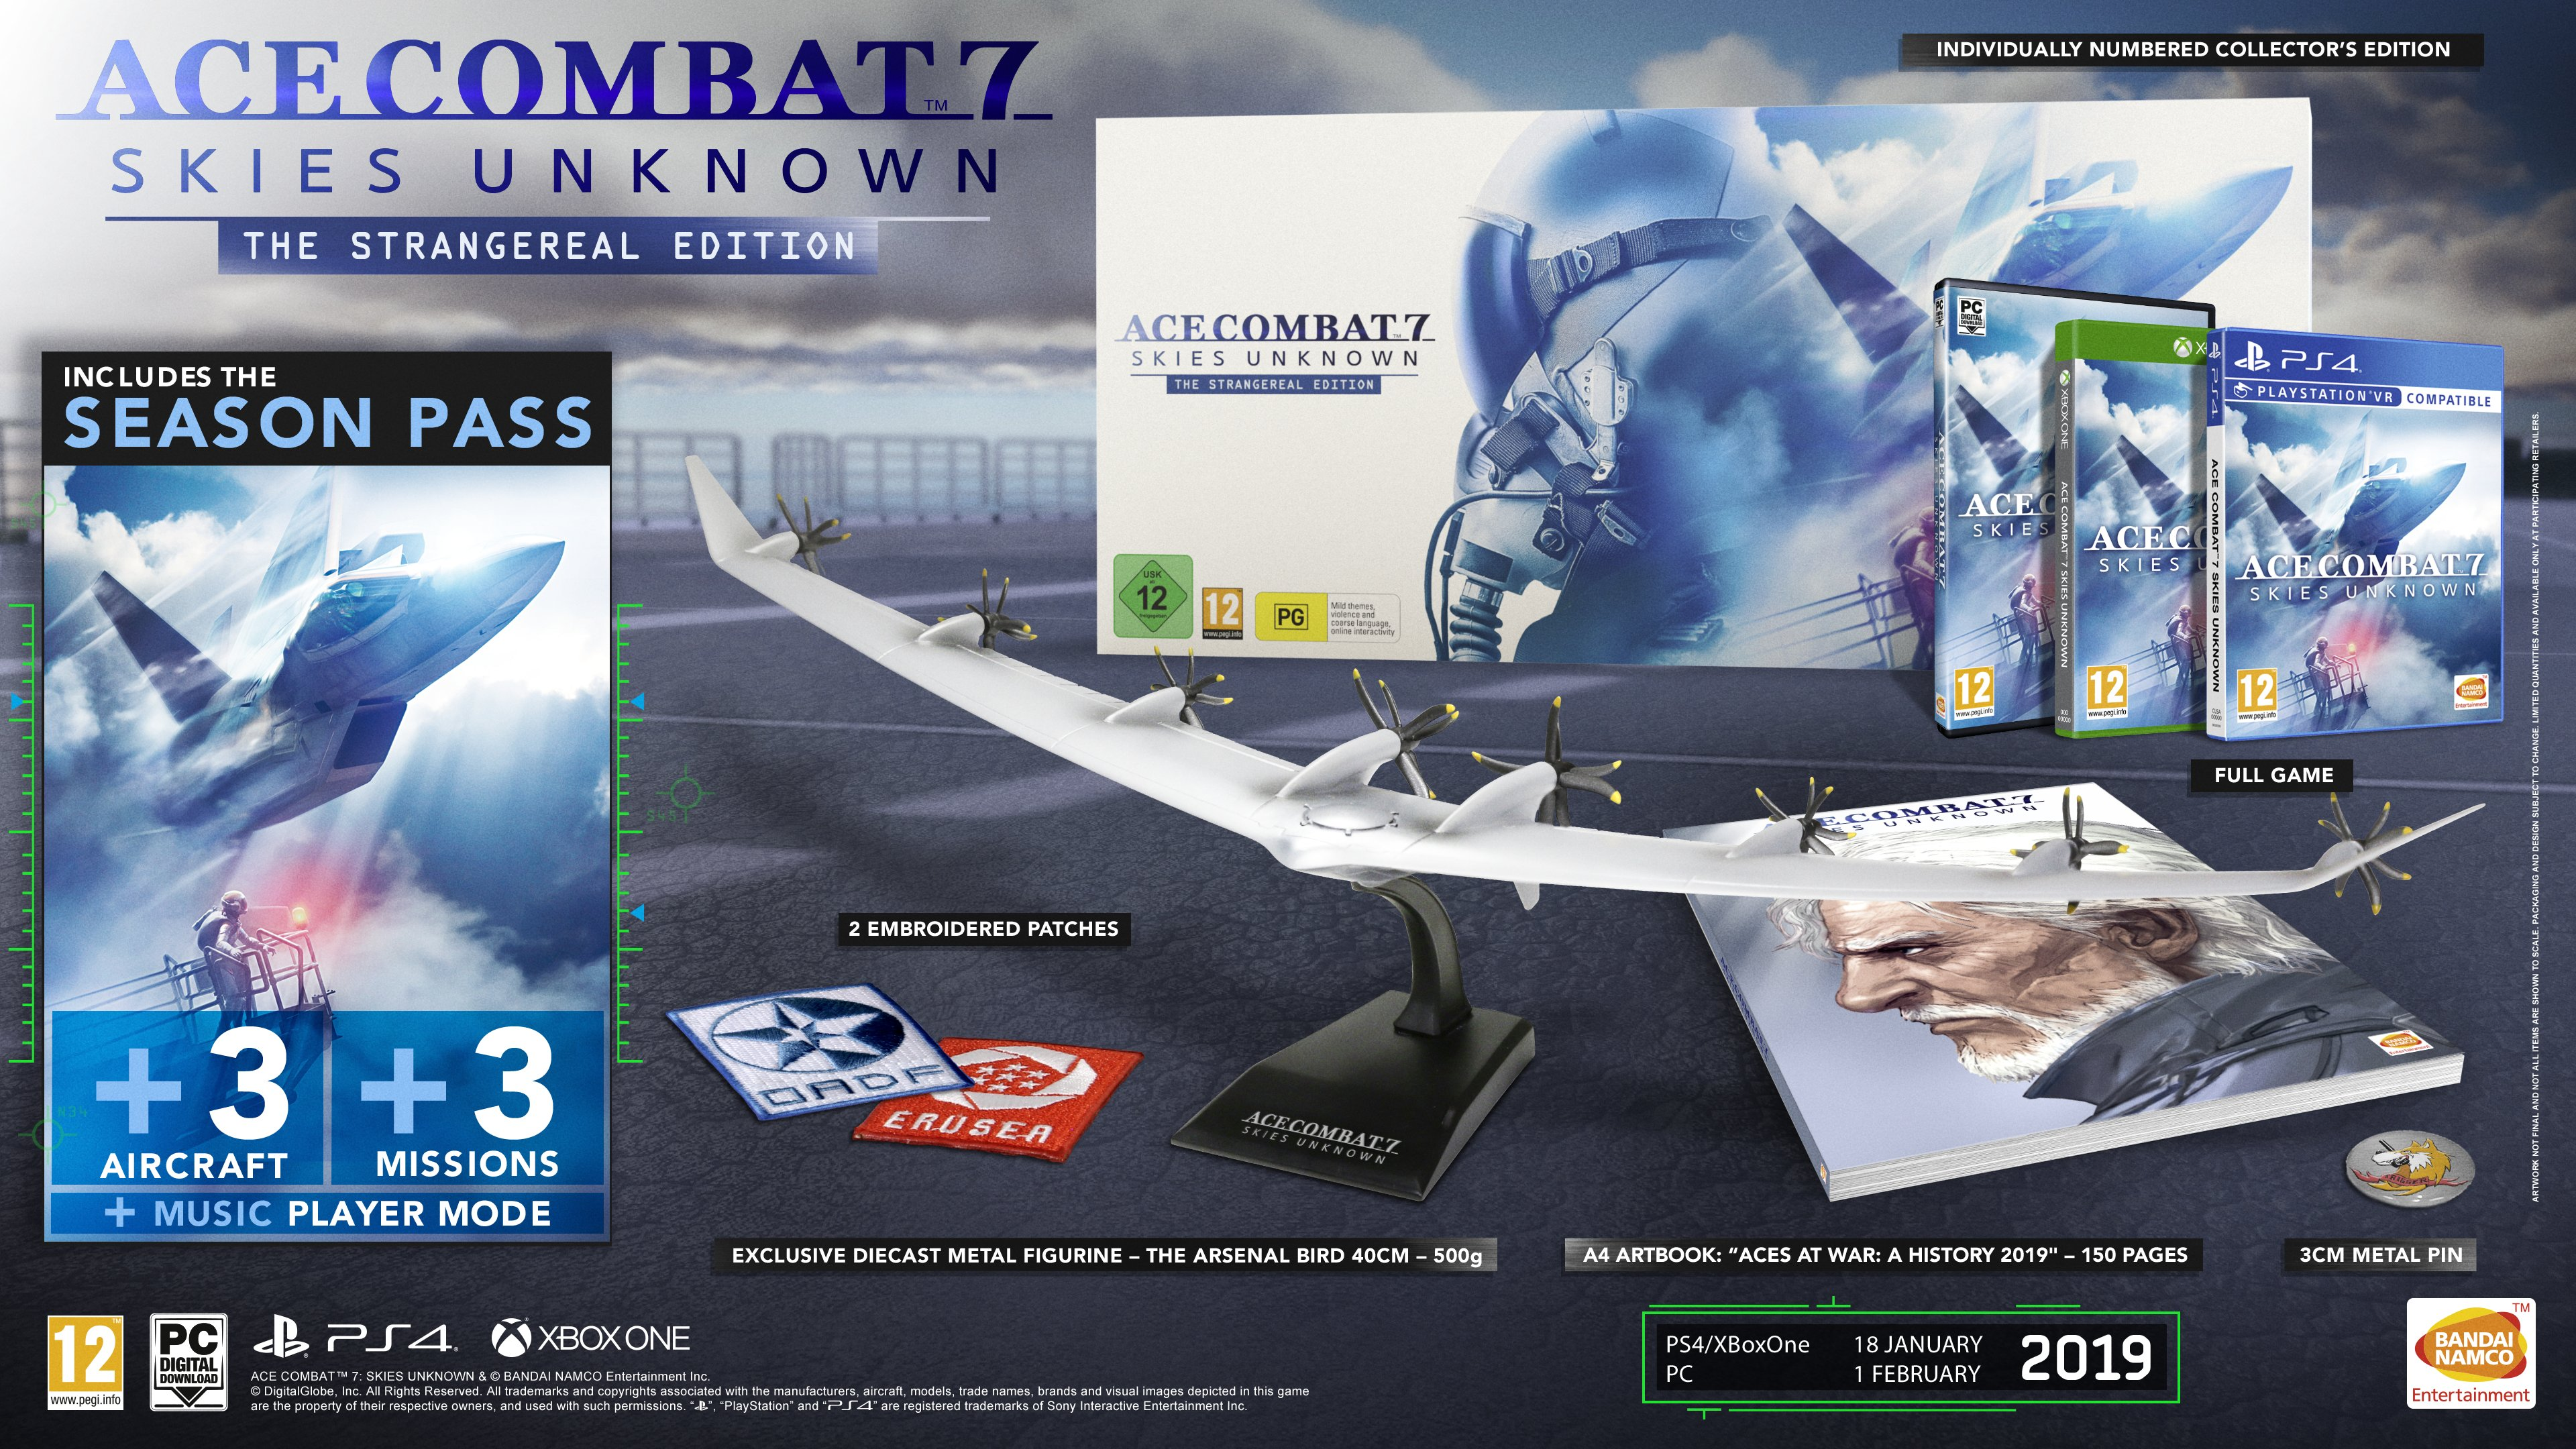 Ace Combat 7: Skies Unknown collector's edition announced